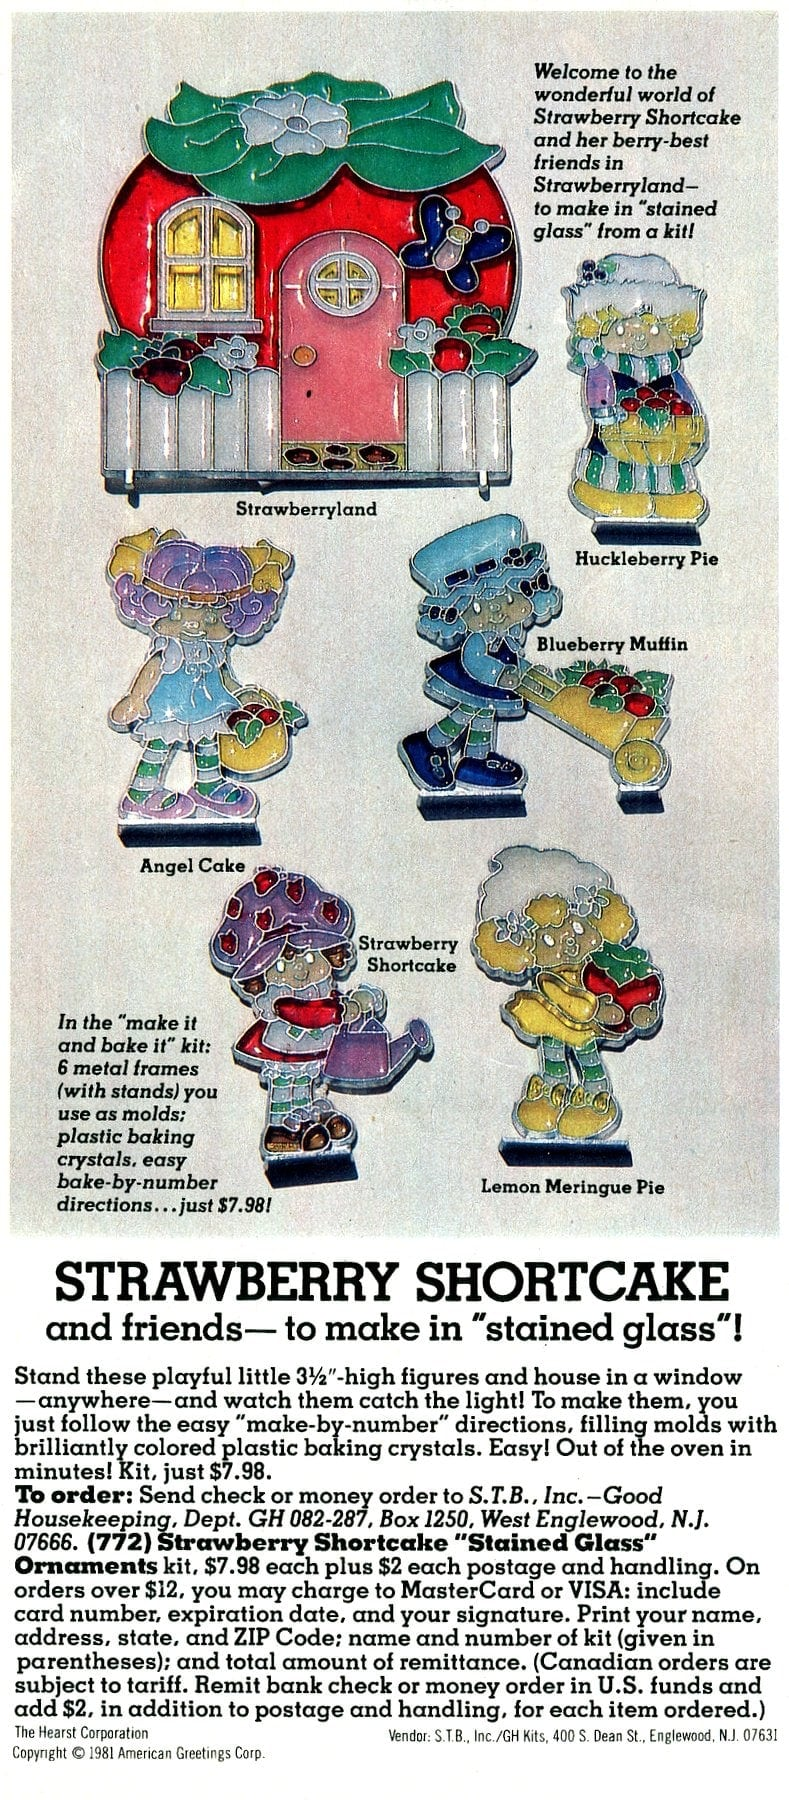 Strawberry Shortcake and friends - stained glass ornaments from 1982